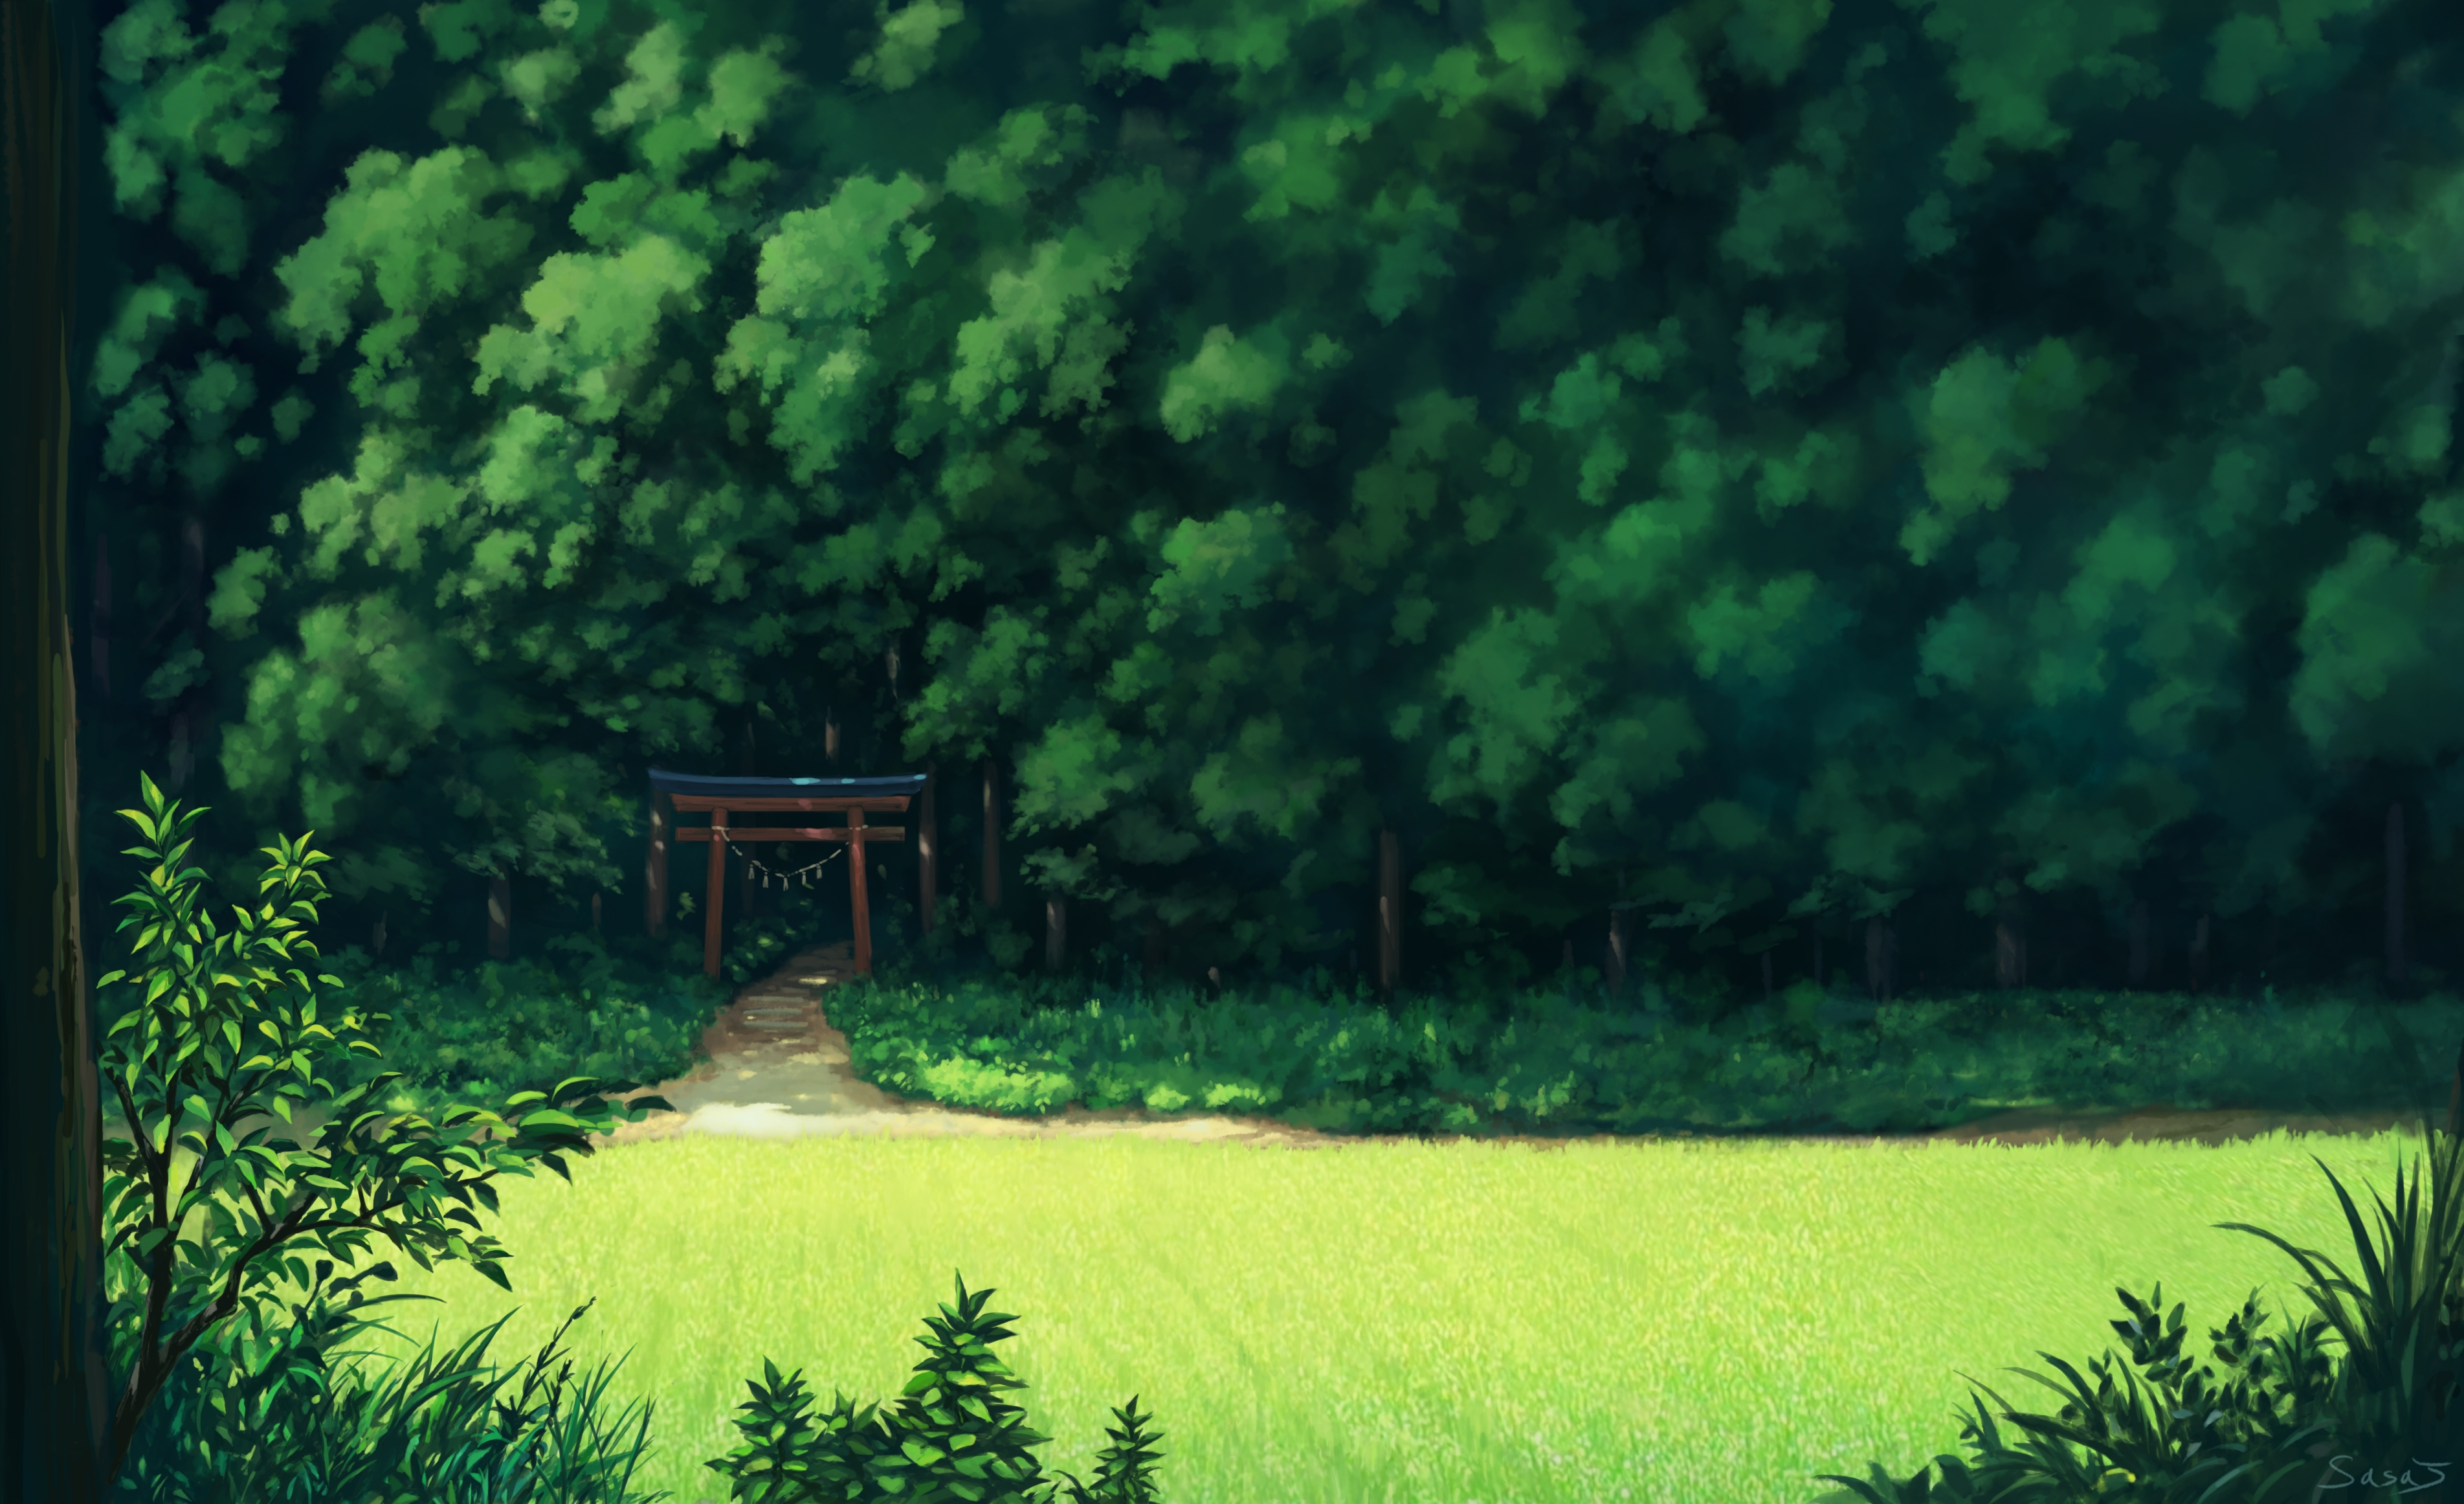 Best 3d Animated Wallpapers For Android Download 2560x1440 Anime Landscape Forest Trees Grass